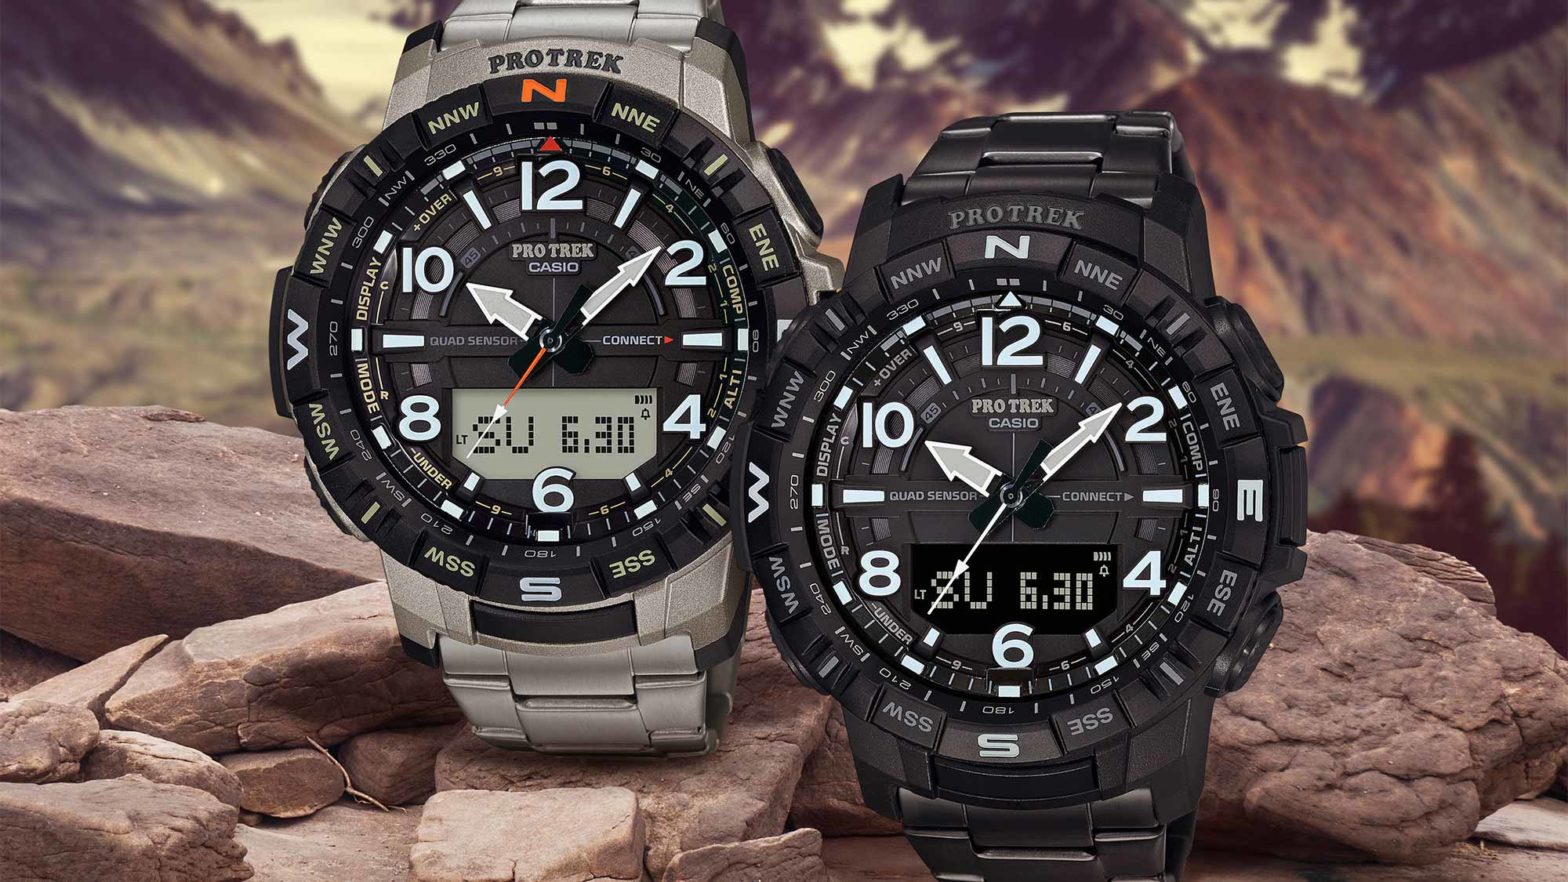 Casio PRO TREK PRT-B50T-7 and PRT-B50T-7